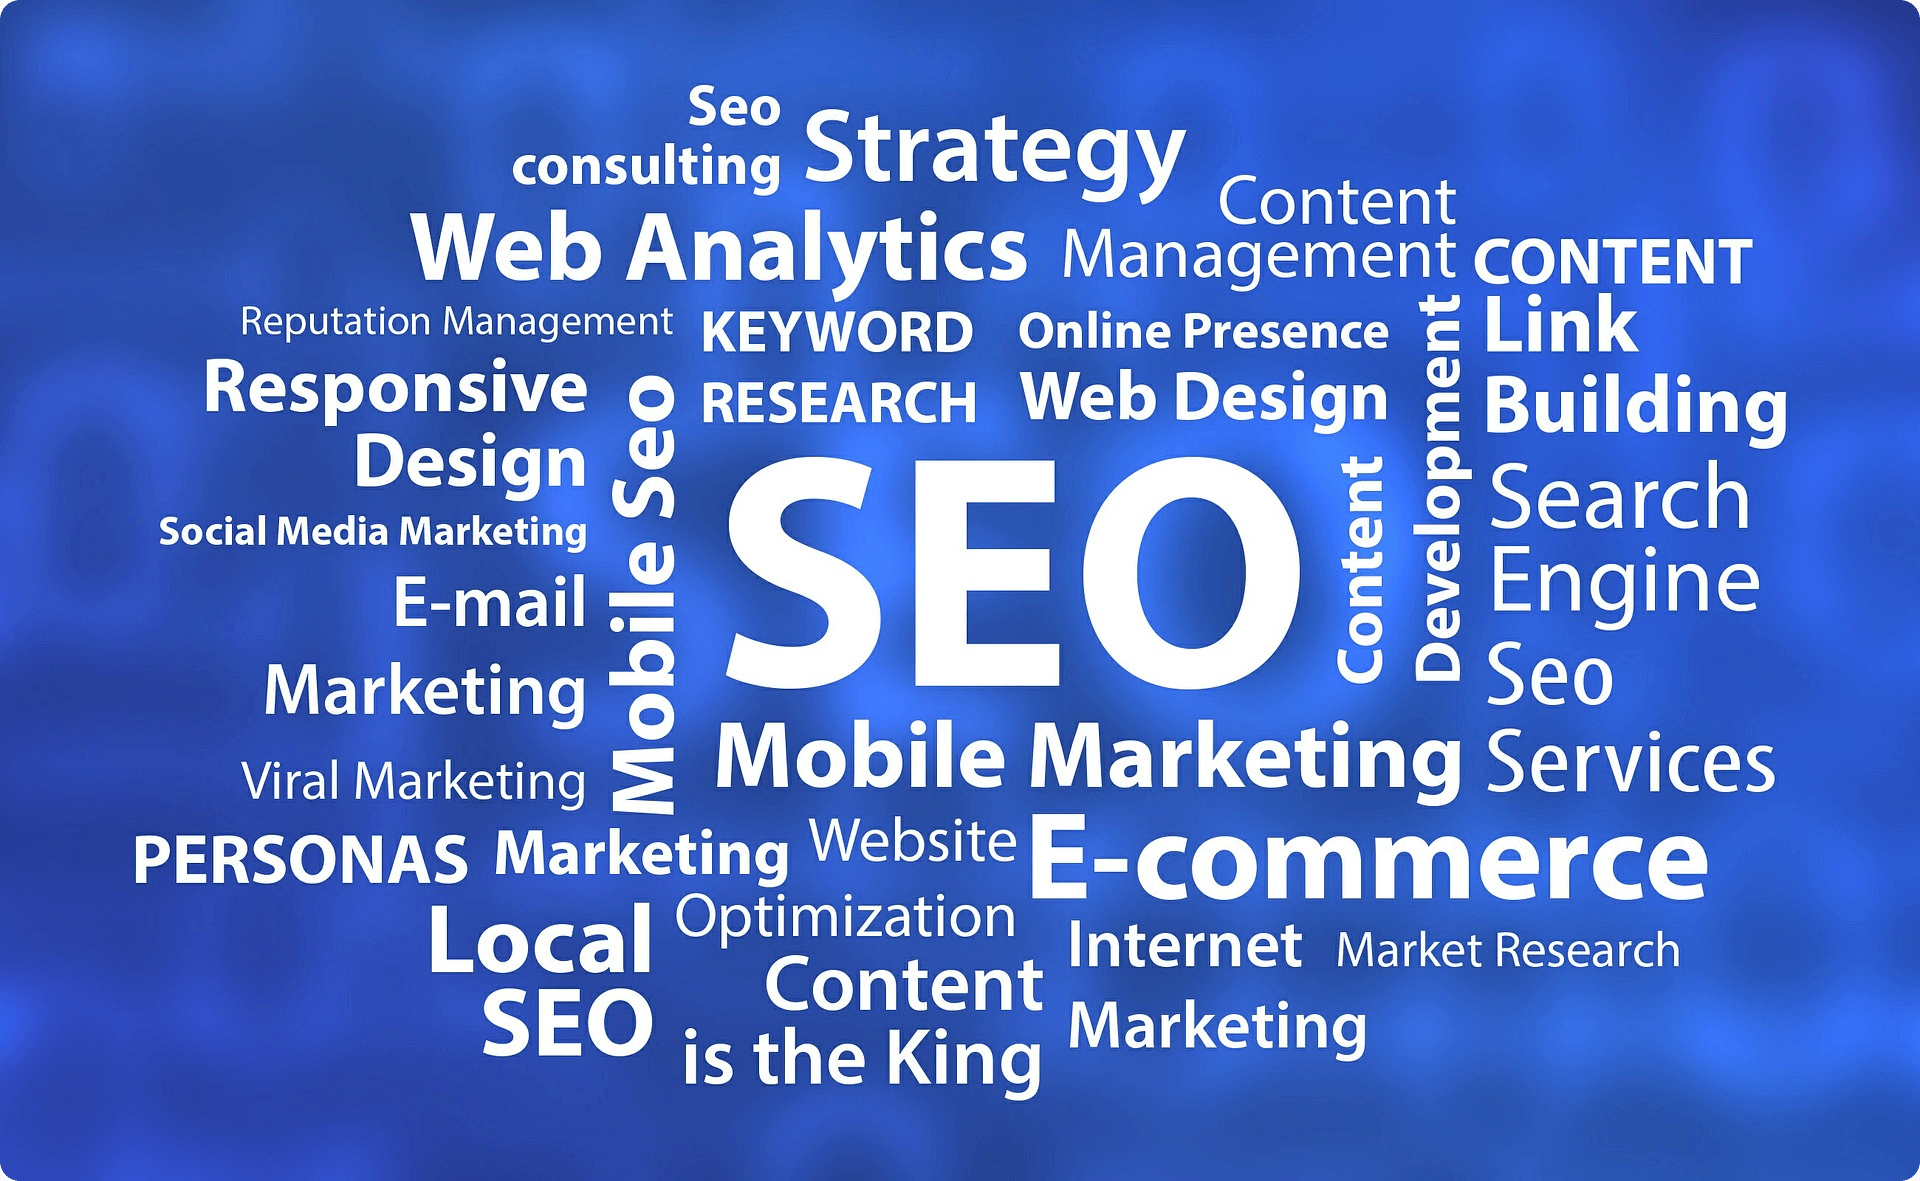 All-advantage-that-SEO-brings-to-small-businesses-and-how-important-is-that